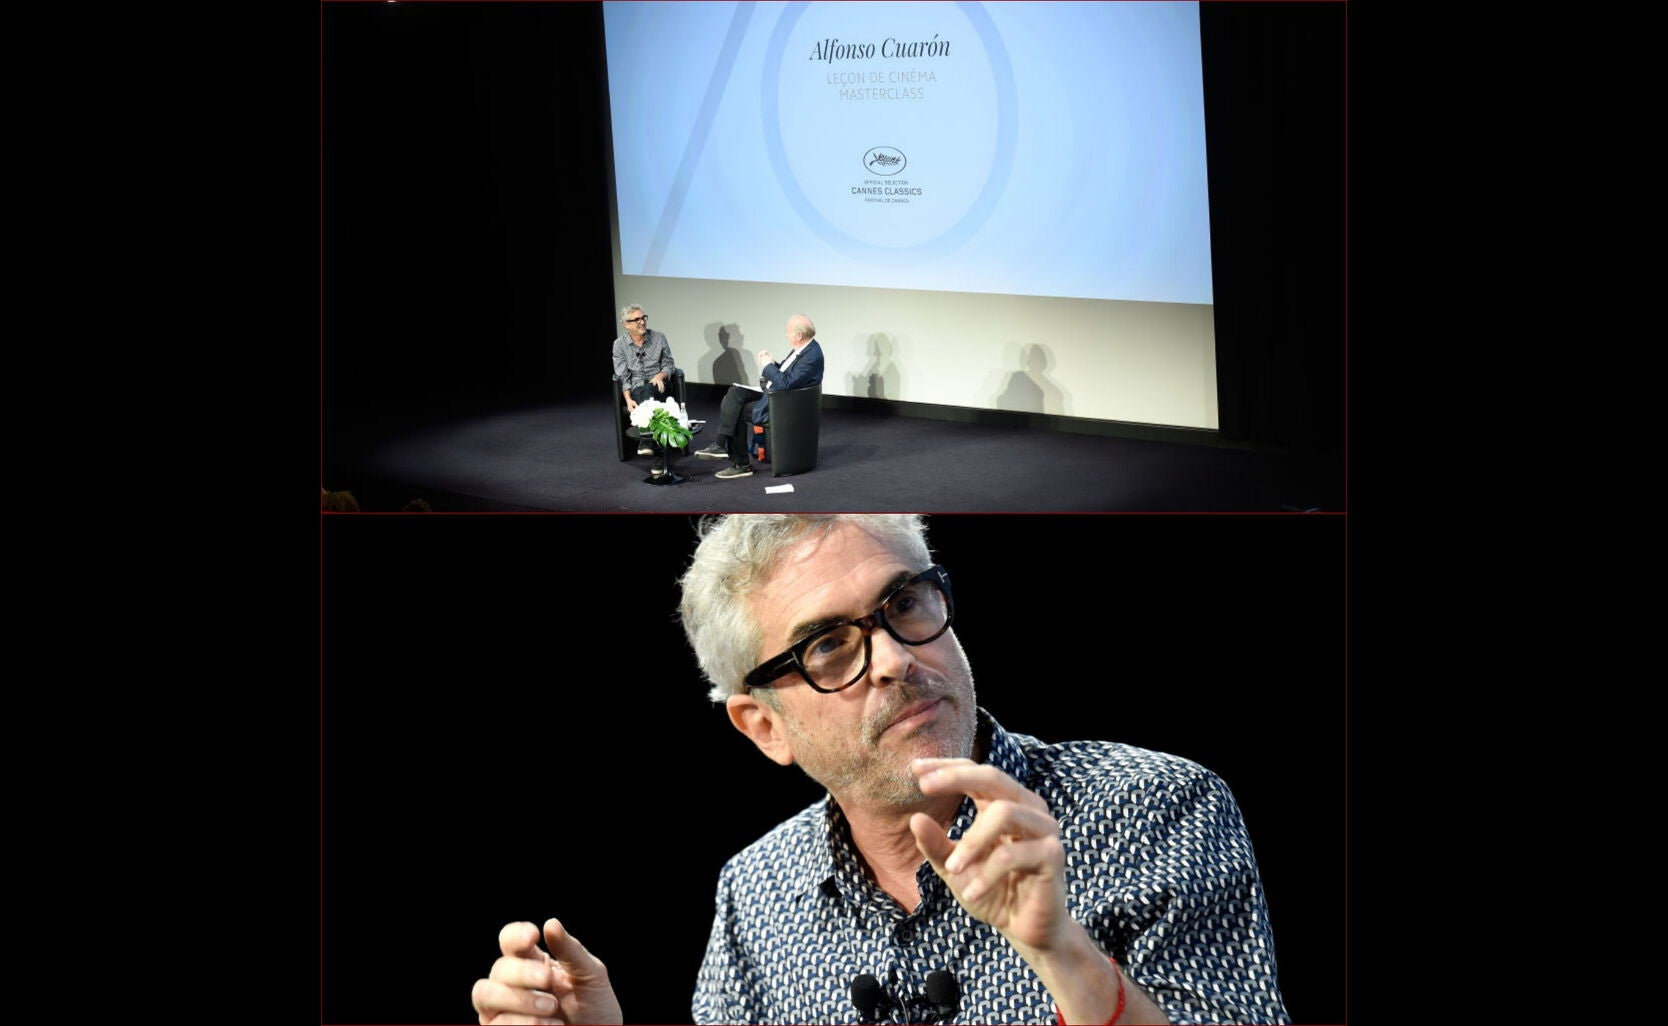 Director Alfonso Cuarón in Cannes 2017